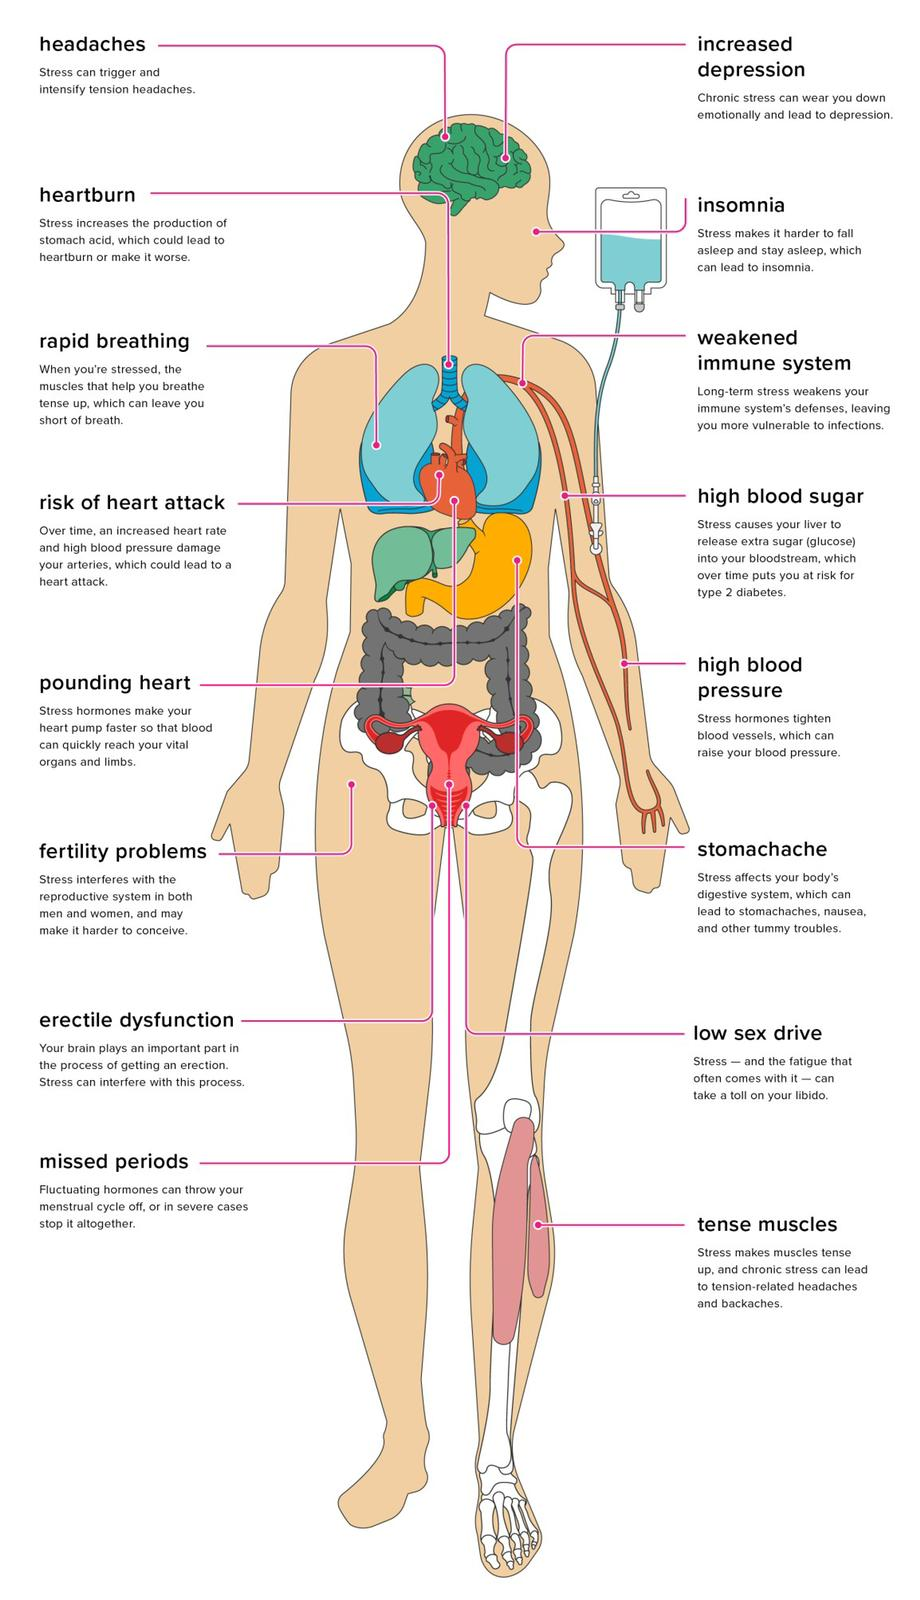 picture of the human body and stress zones